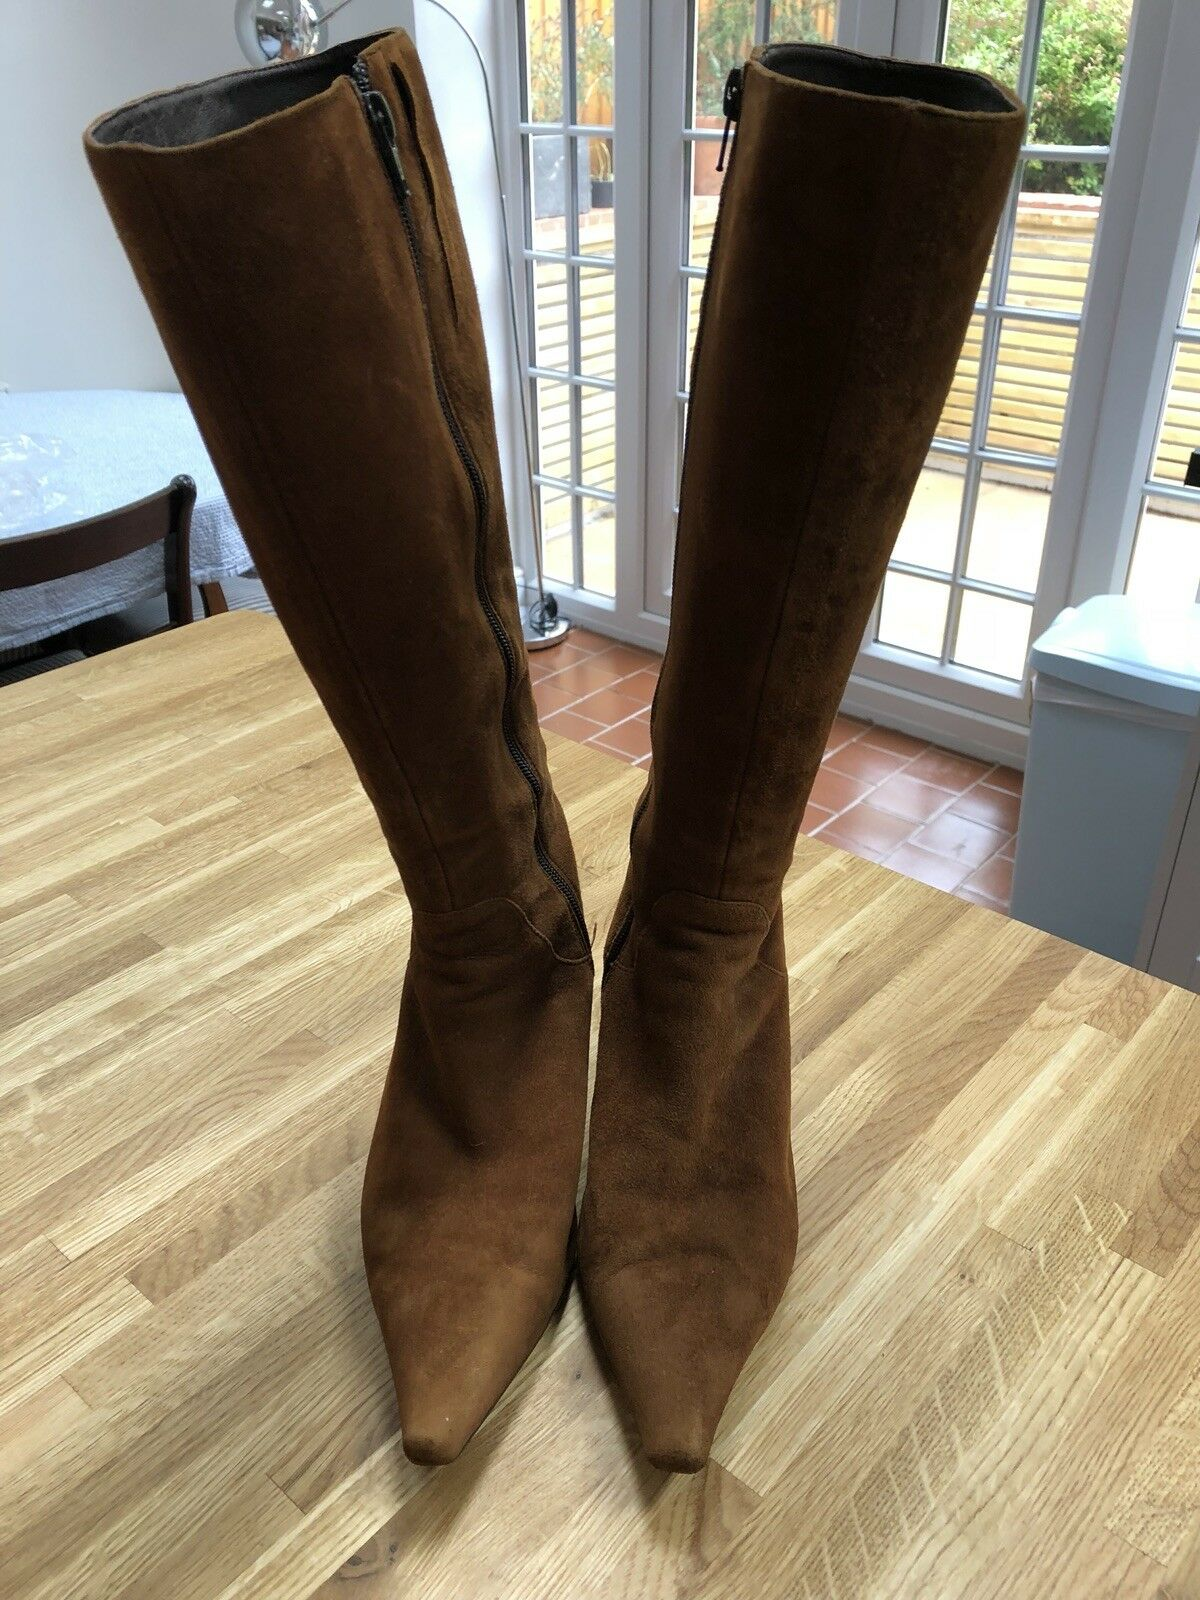 Knee High Brown Suede Leather Boots Size 5 38 Soft Italian Leather